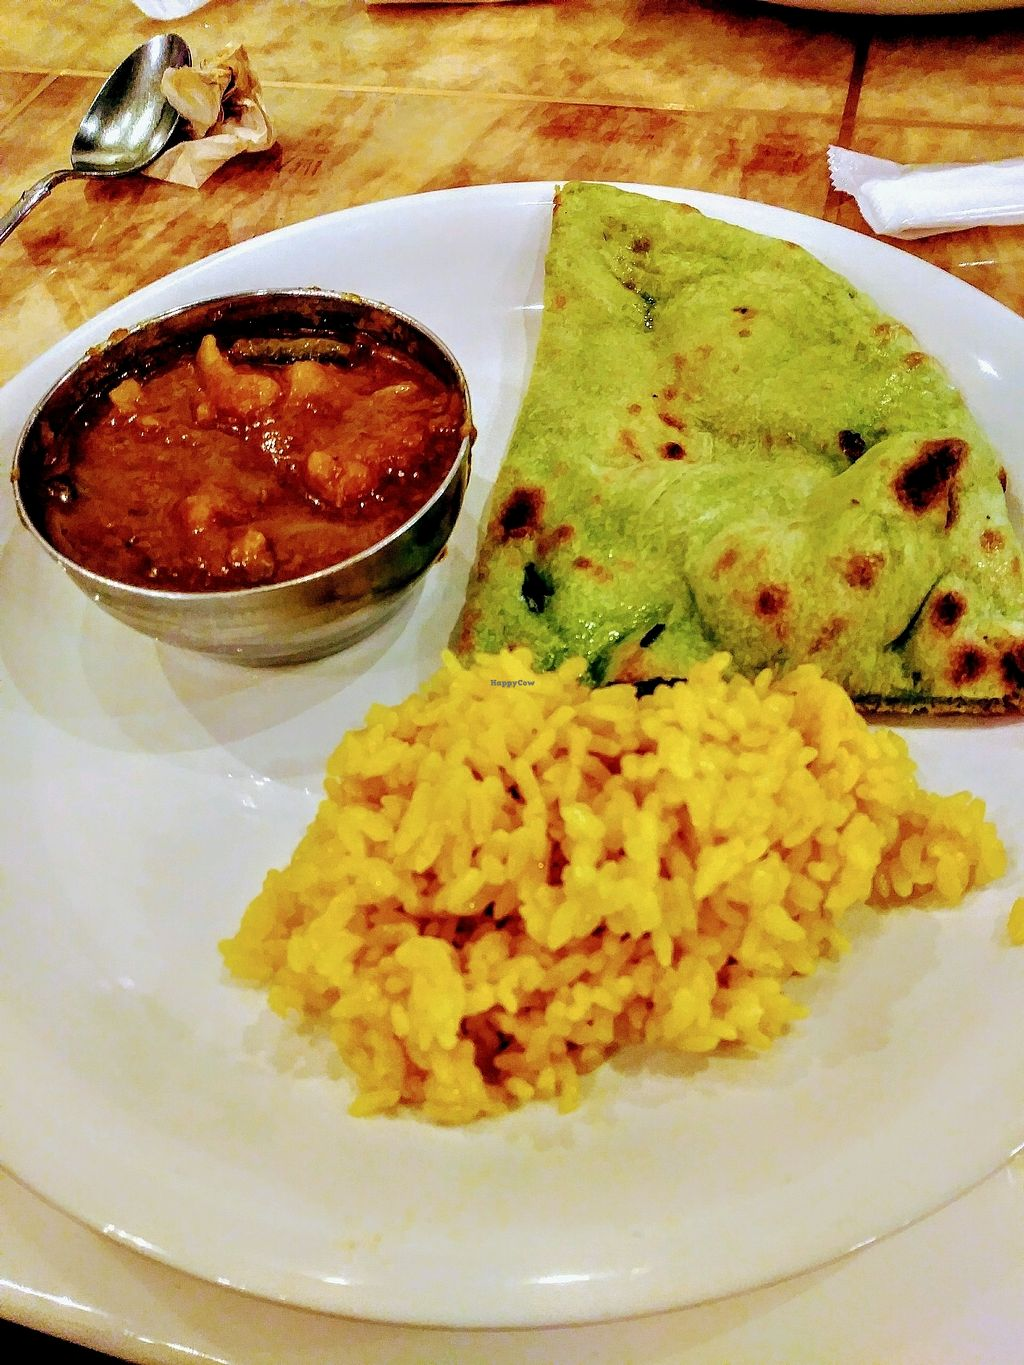 """Photo of Milan Nataraj Shibuya  by <a href=""""/members/profile/AaronMG"""">AaronMG</a> <br/>veg curry, tumeric rice, and vegan naan <br/> April 2, 2018  - <a href='/contact/abuse/image/65365/379796'>Report</a>"""